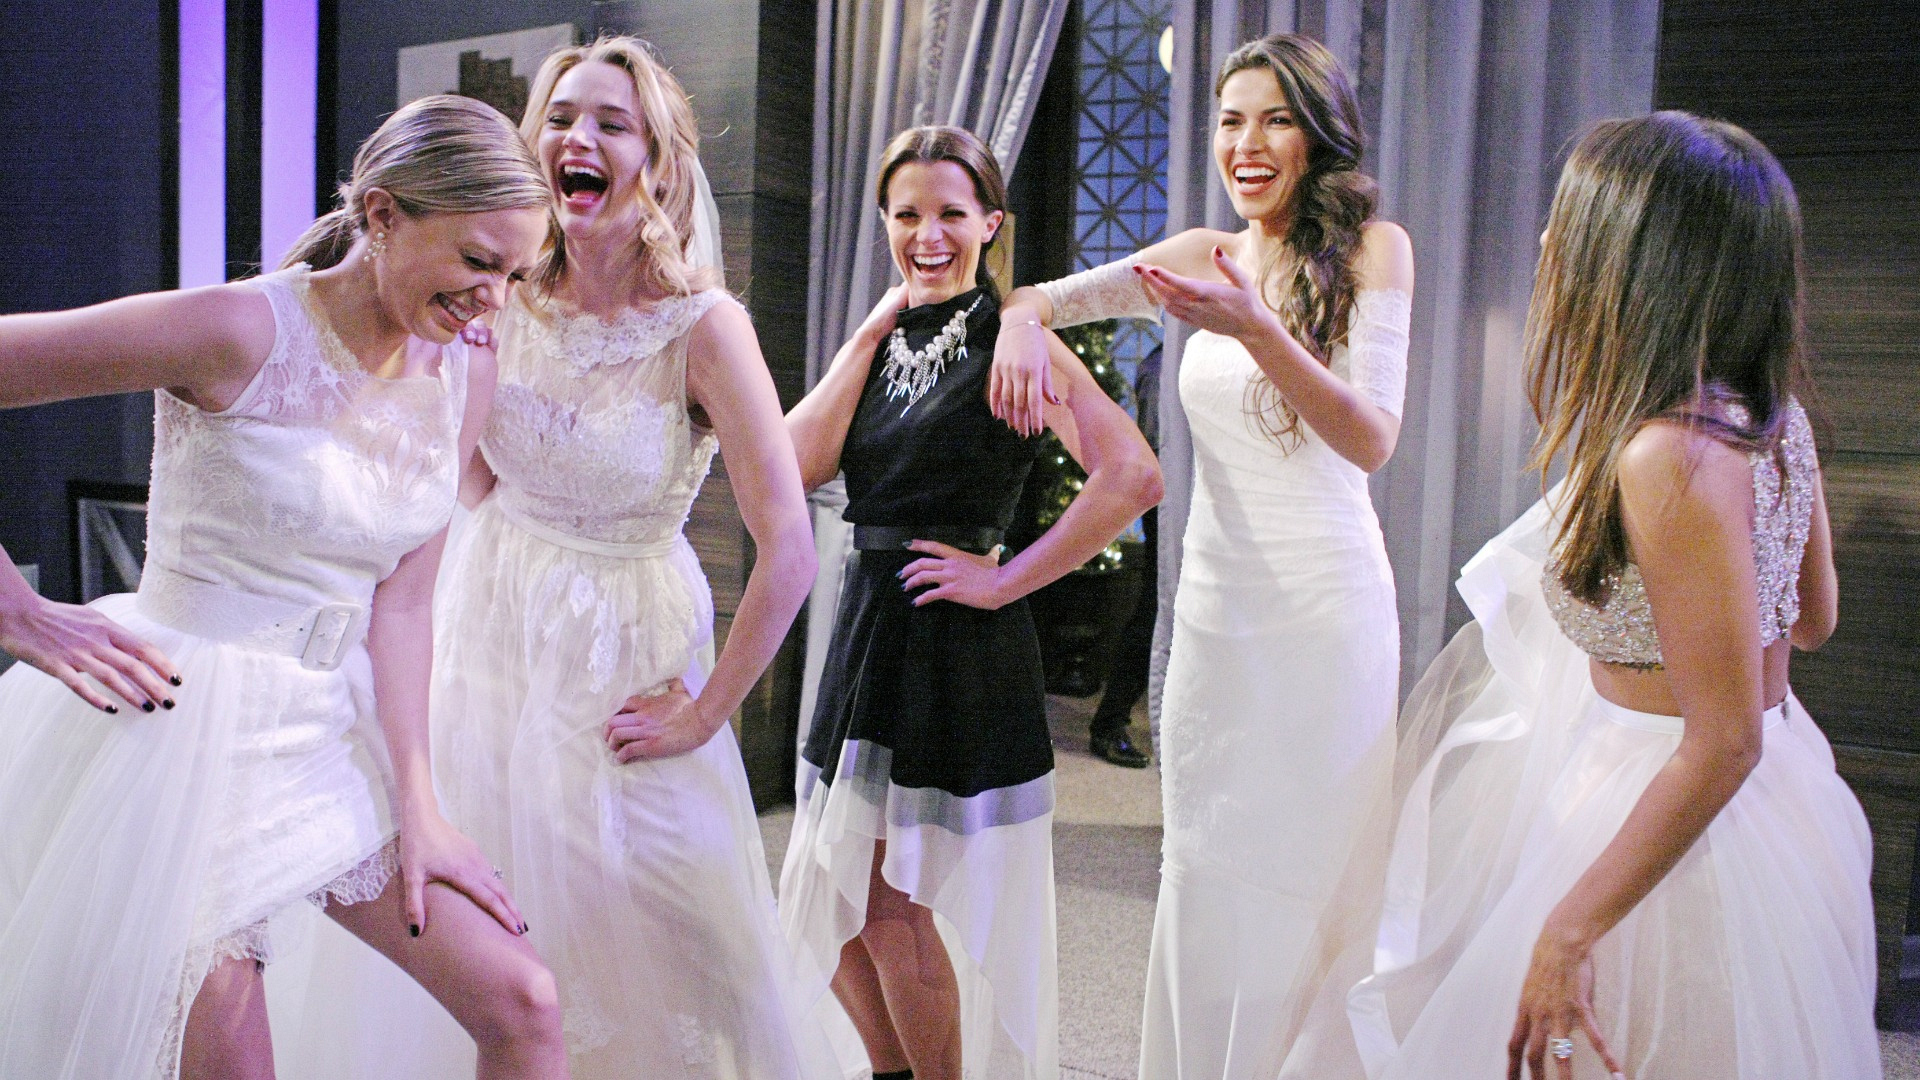 The beautiful stars of The Young and the Restless found time for fun in between breaks filming Abby and Stitch's NYE wedding.